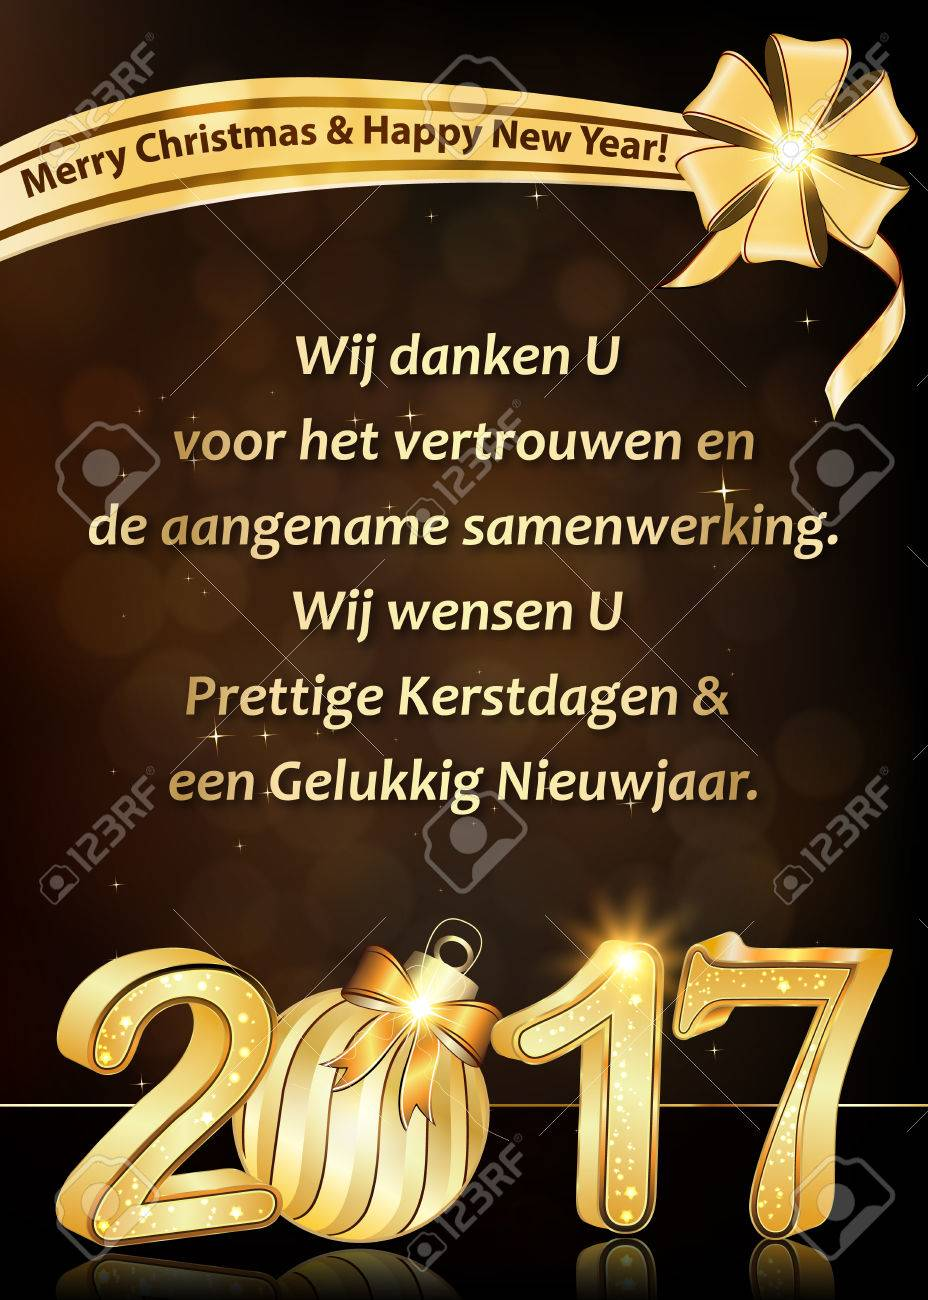 Thank You Dutch Business New Year Greeting Card We Wish To Thank